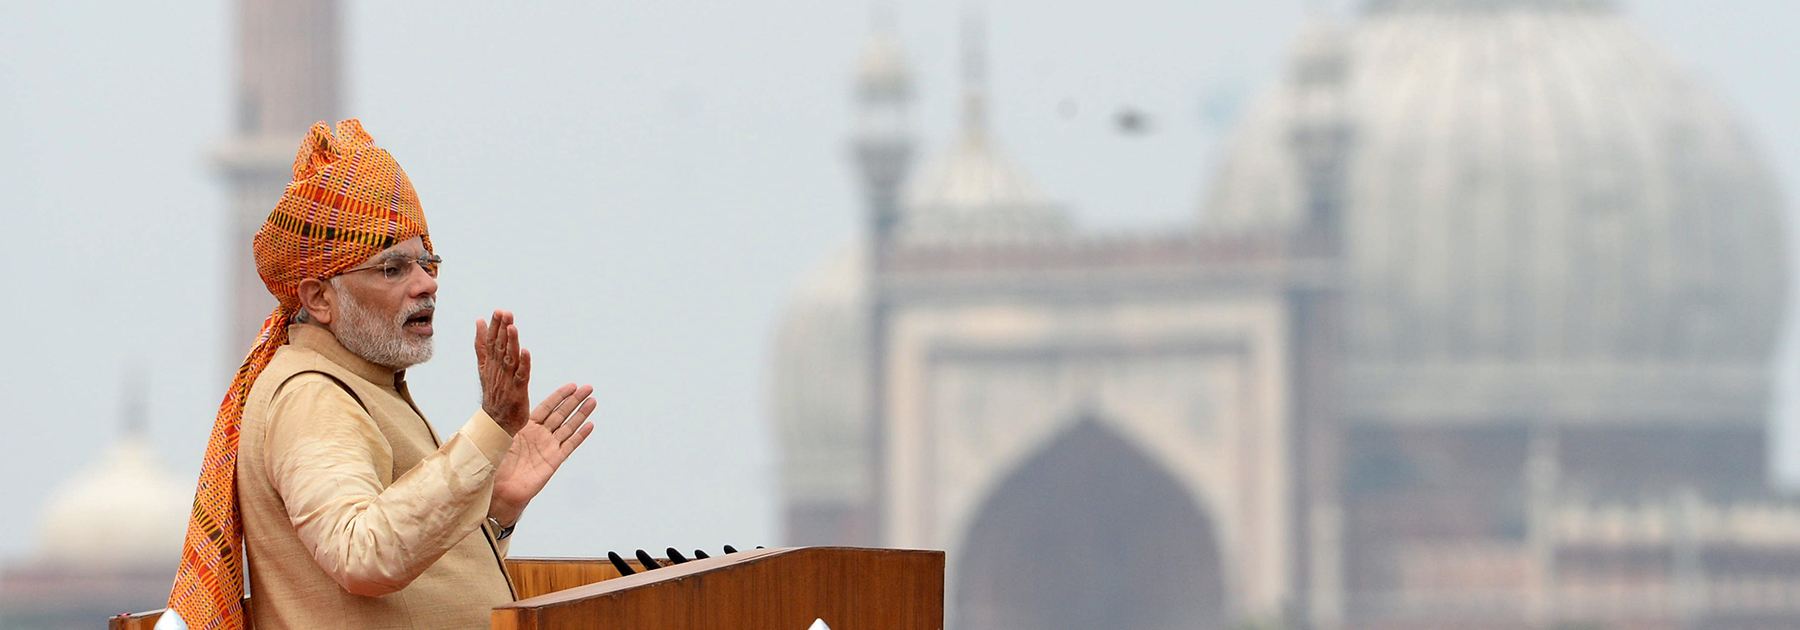 Prime Minister Narendra Modi gestures as he delivers his Independence Day speech from The Red Fort in New Delhi on August 15, 2015. (PRAKASH SINGH/AFP/Getty Images)